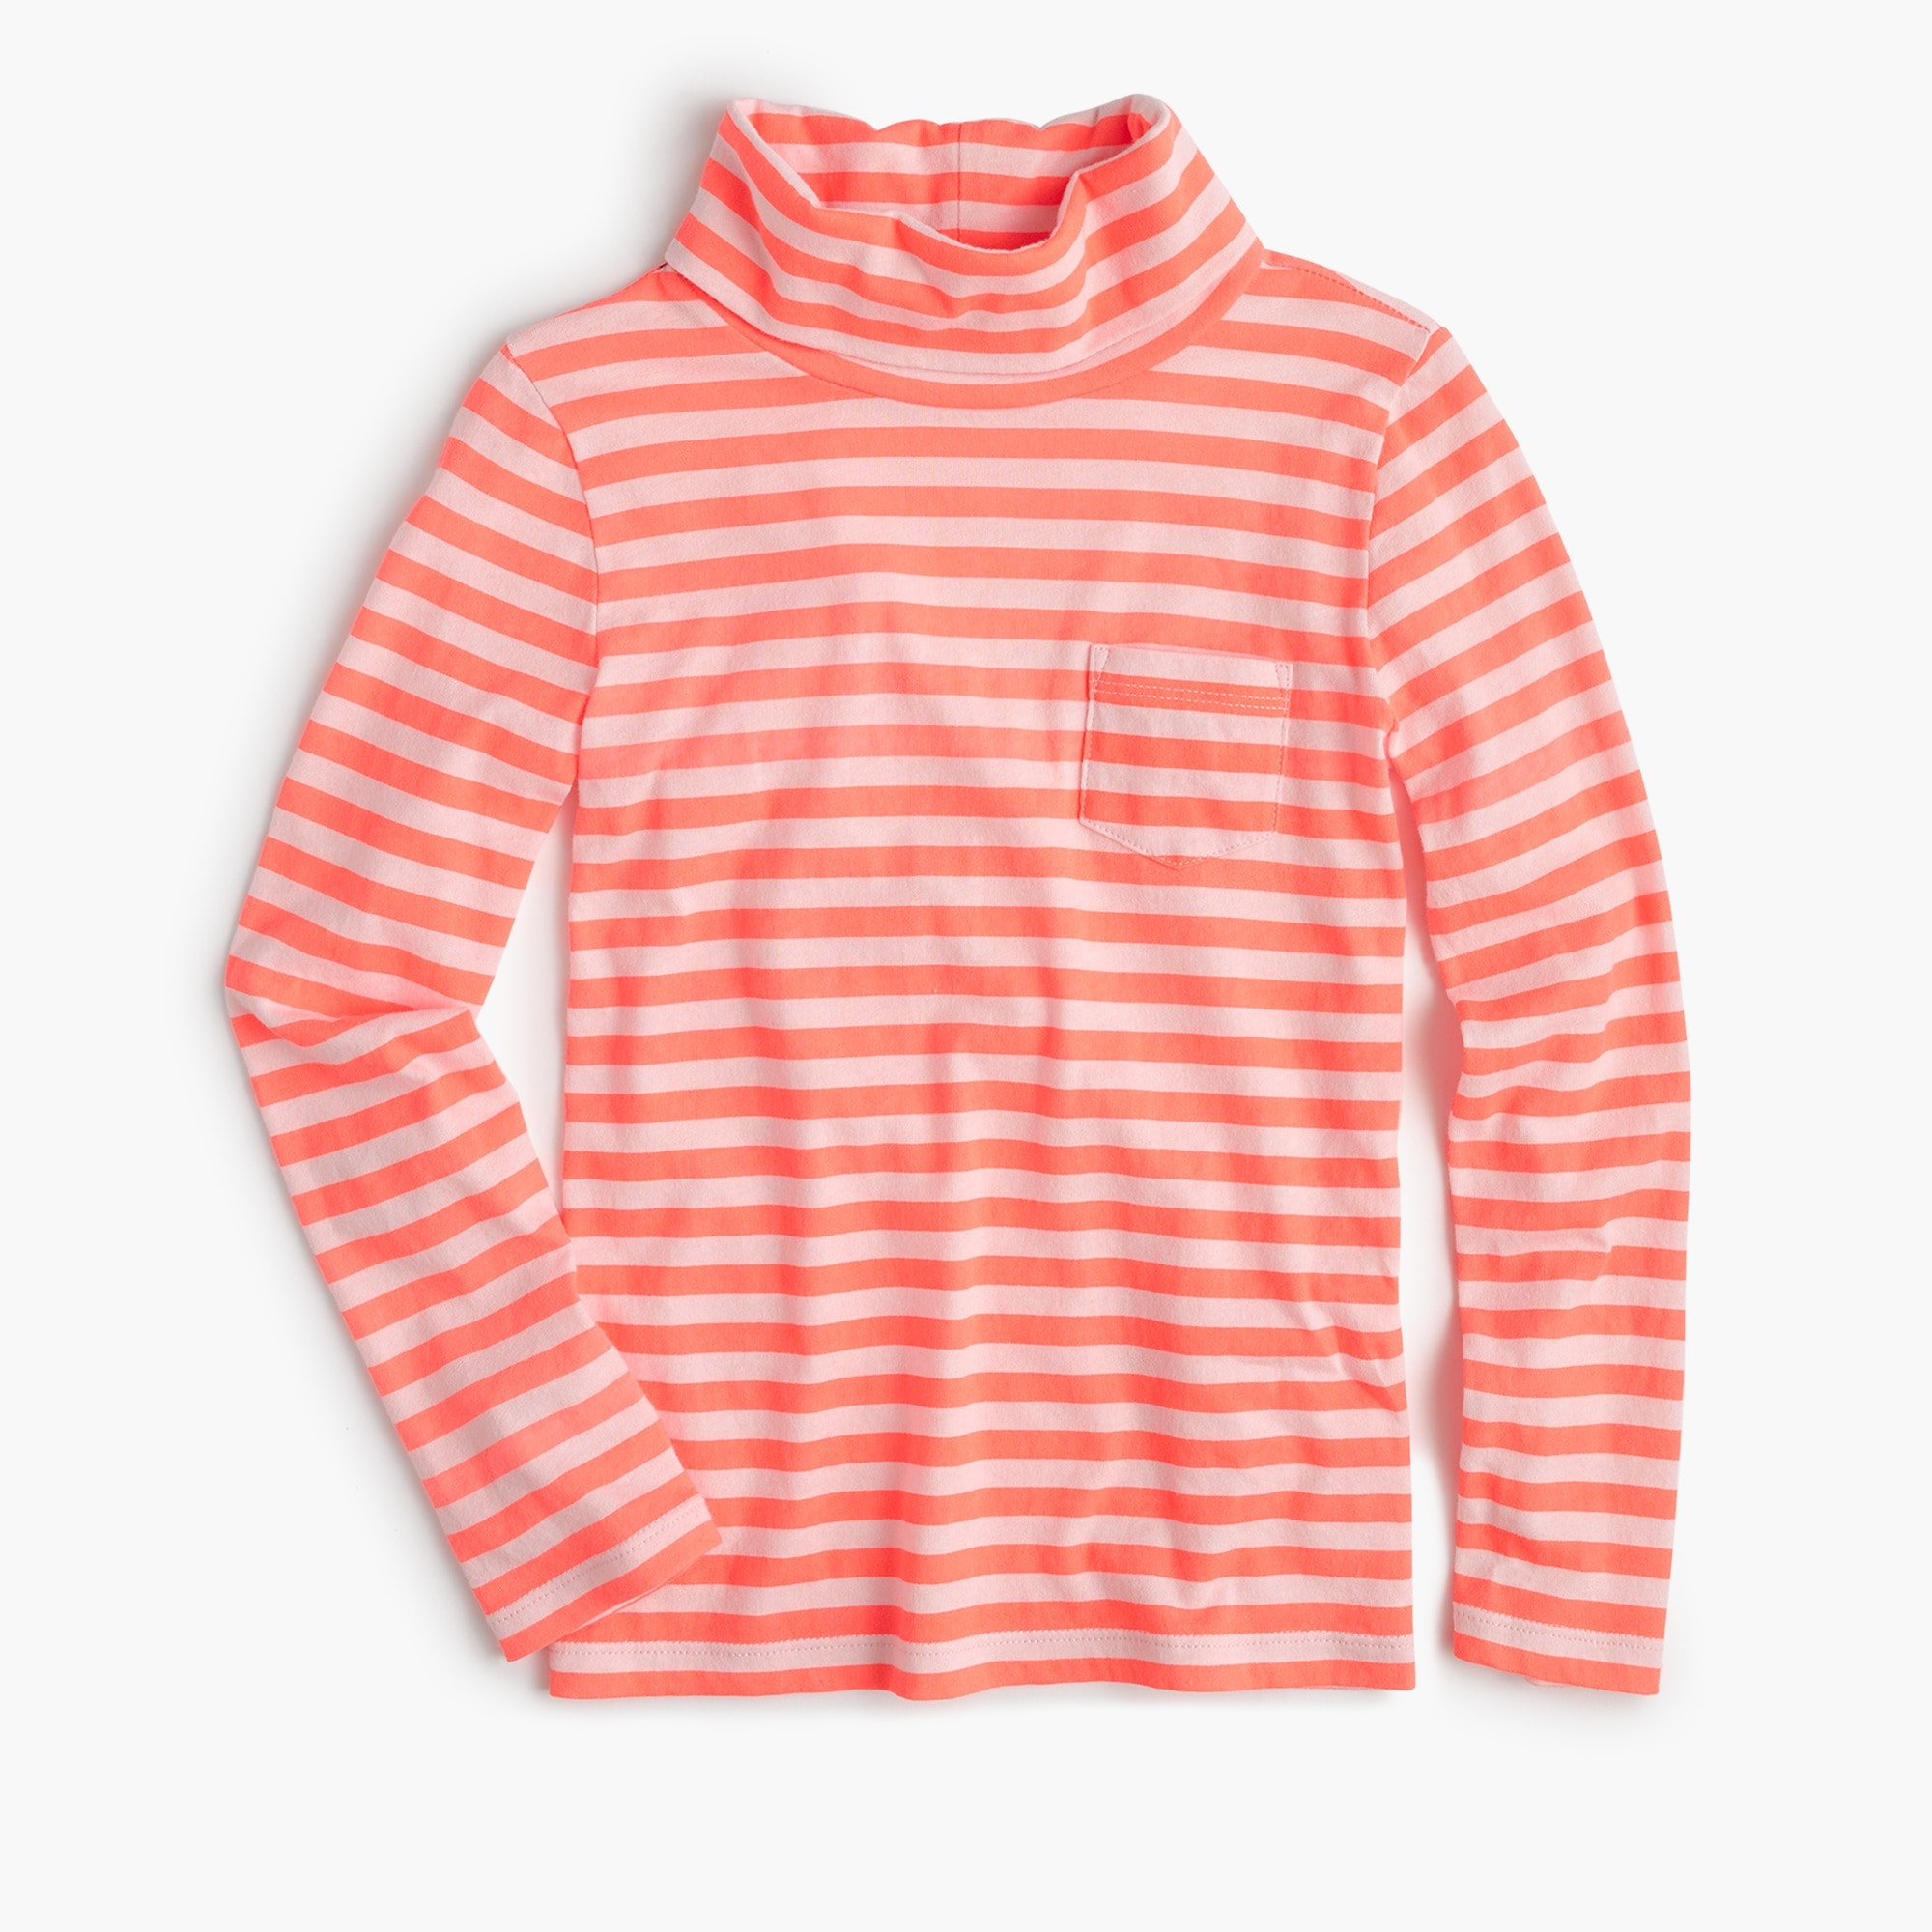 Girls' striped turtleneck